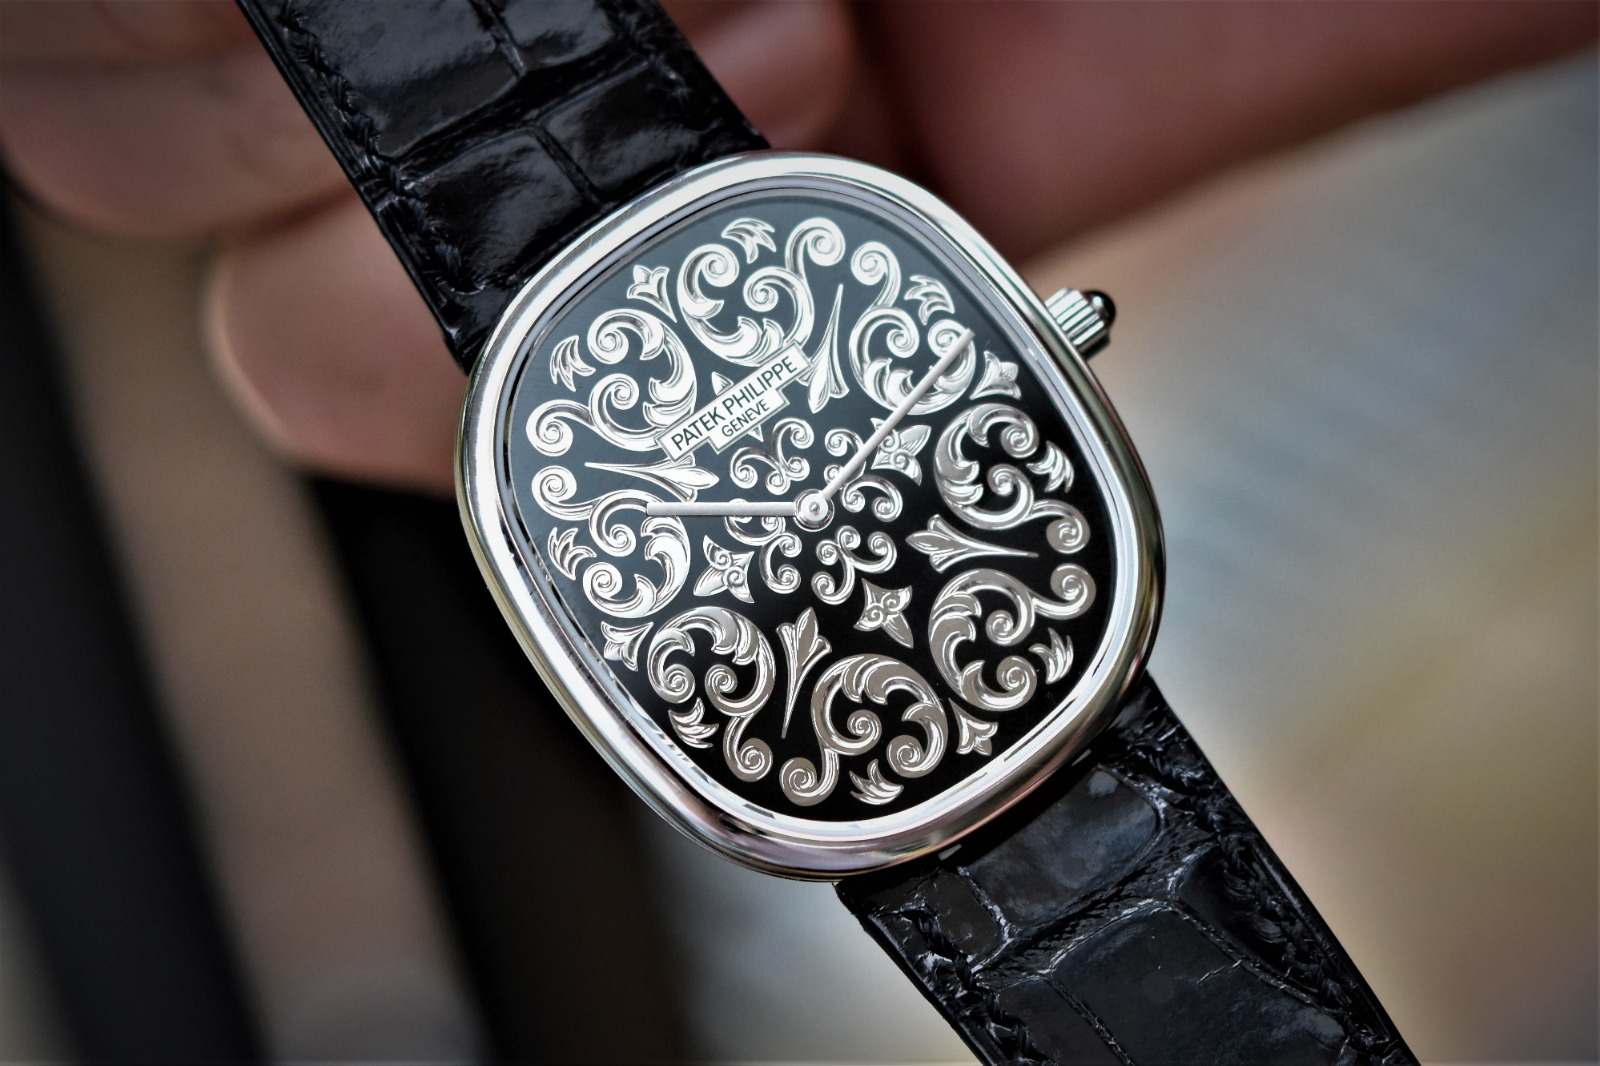 WATCH COLLECTING ACHIEVES WORLD'S FIRST AUCTION SALE OF PATEK PHILIPPE'S 50TH ANNIVERSARY ELLIPSE